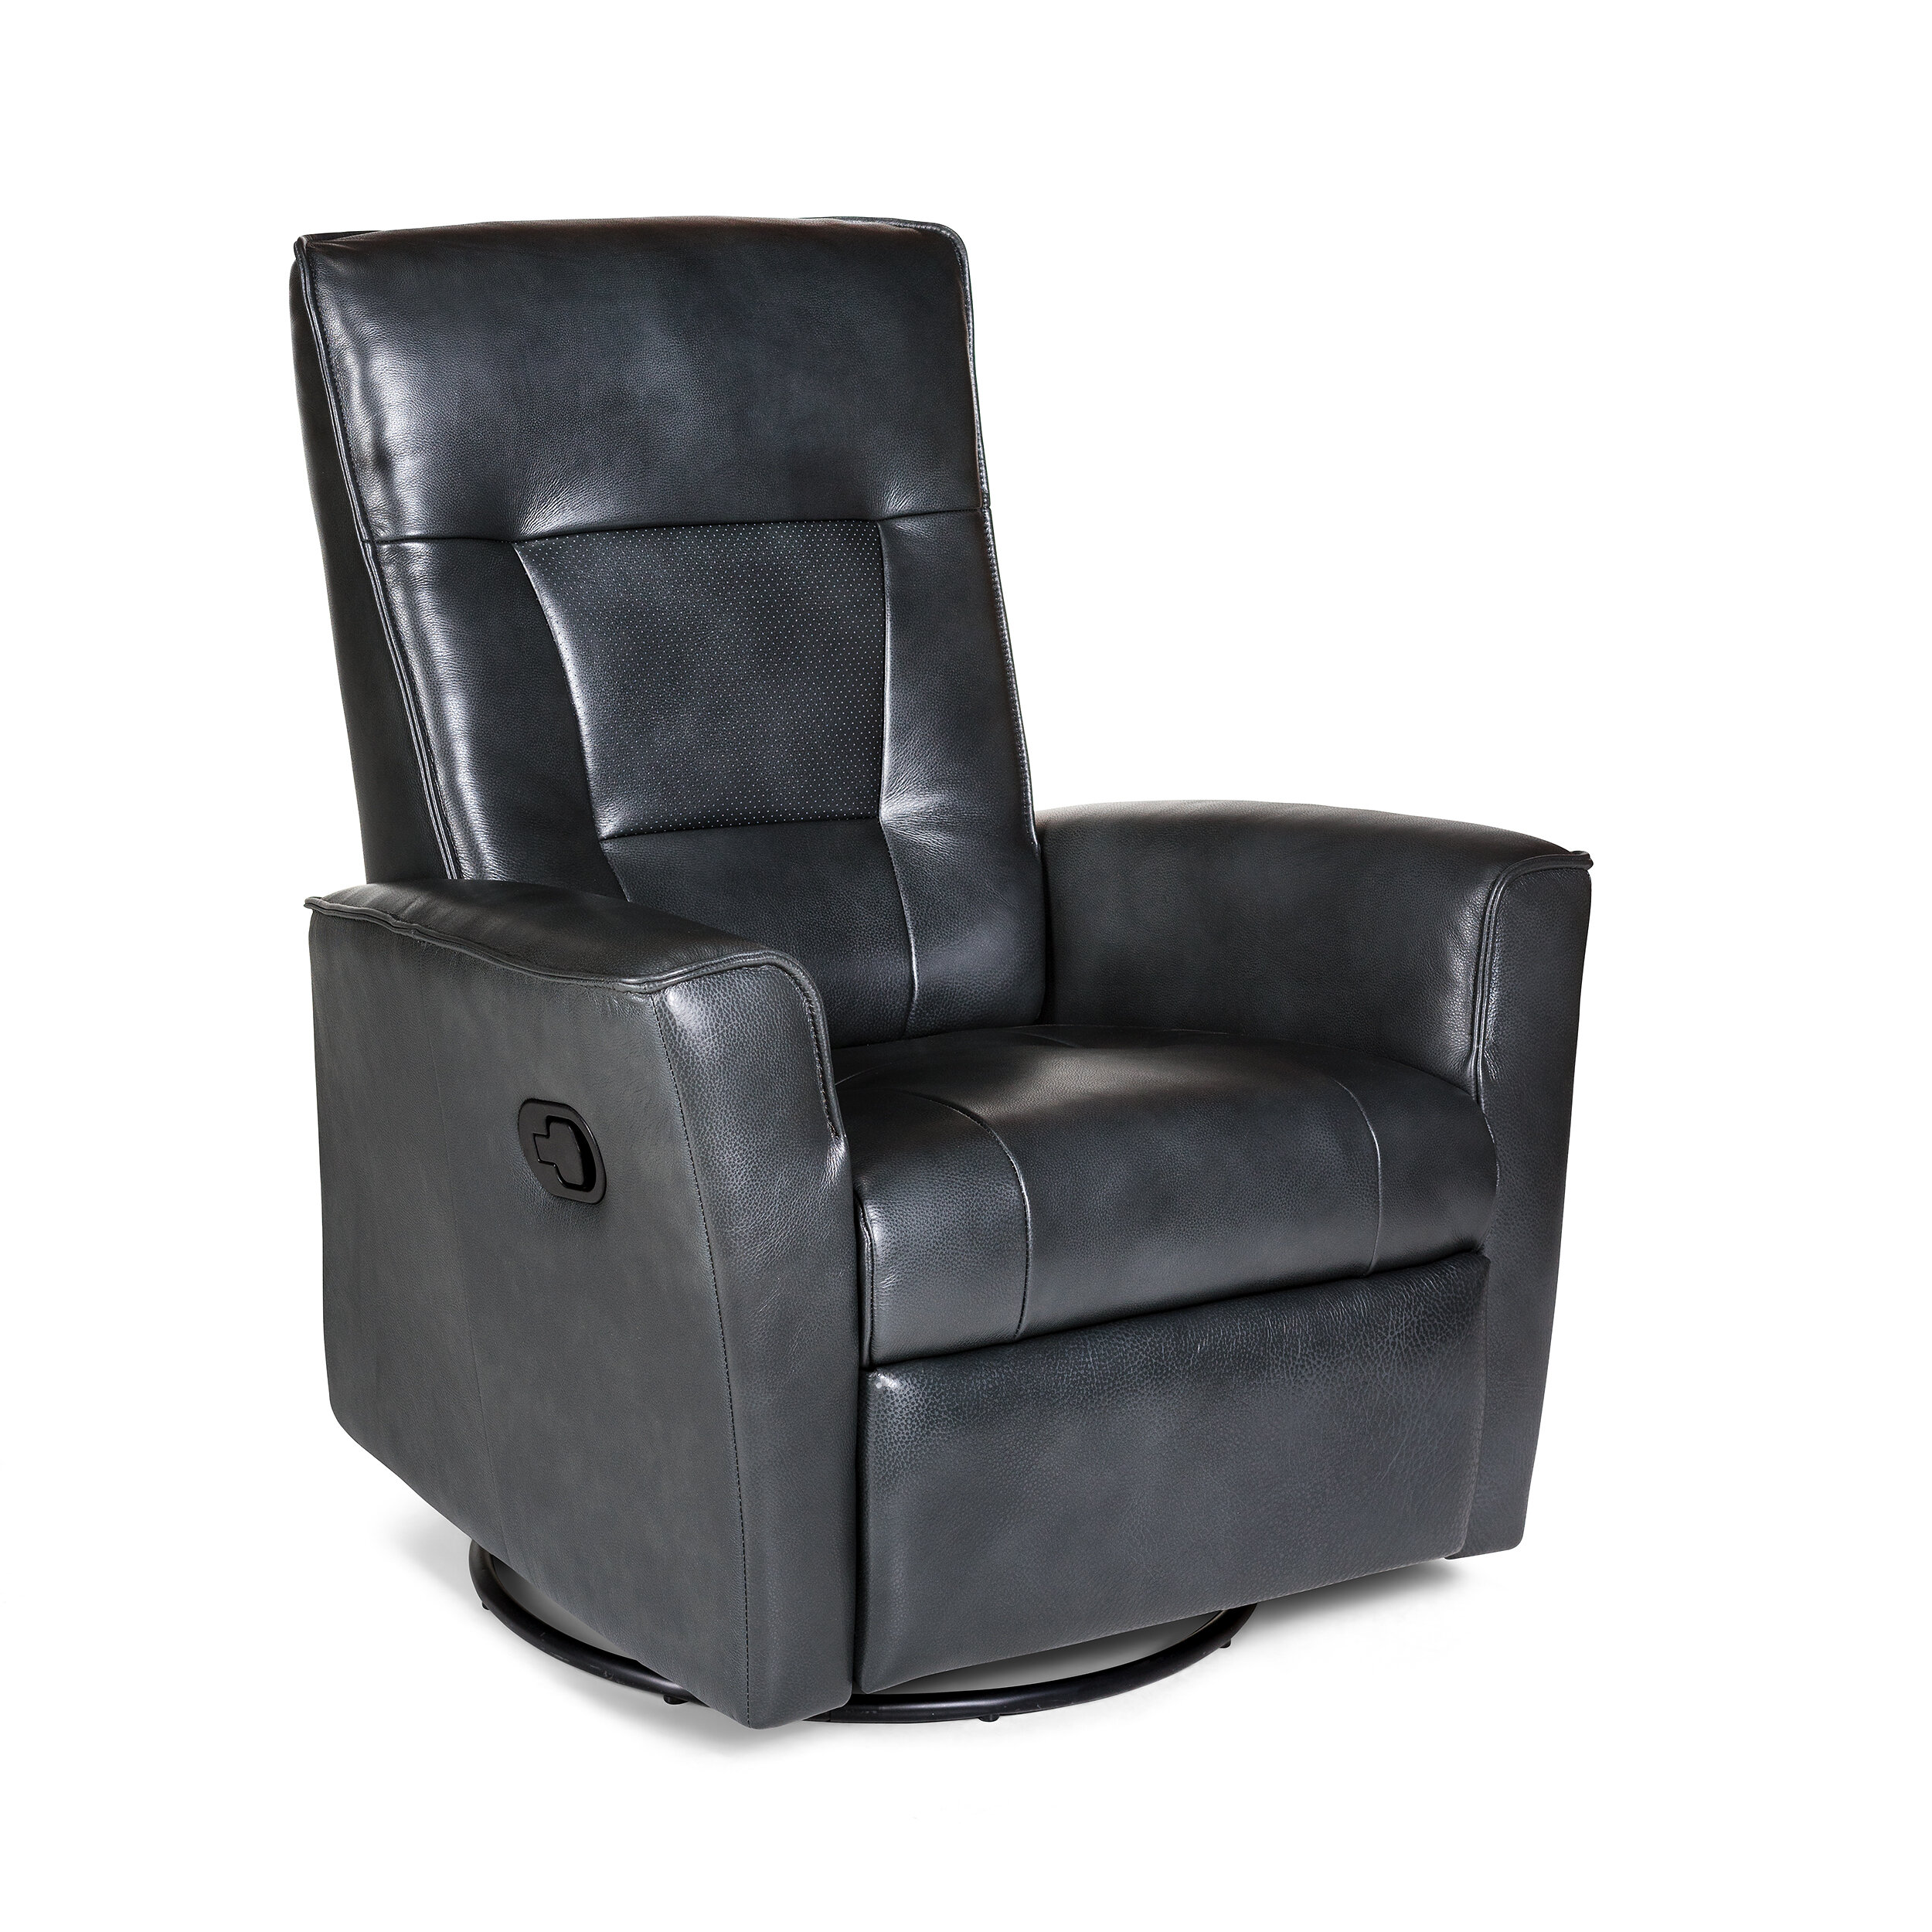 opulence home auckland manual swivel glider recliner wayfair